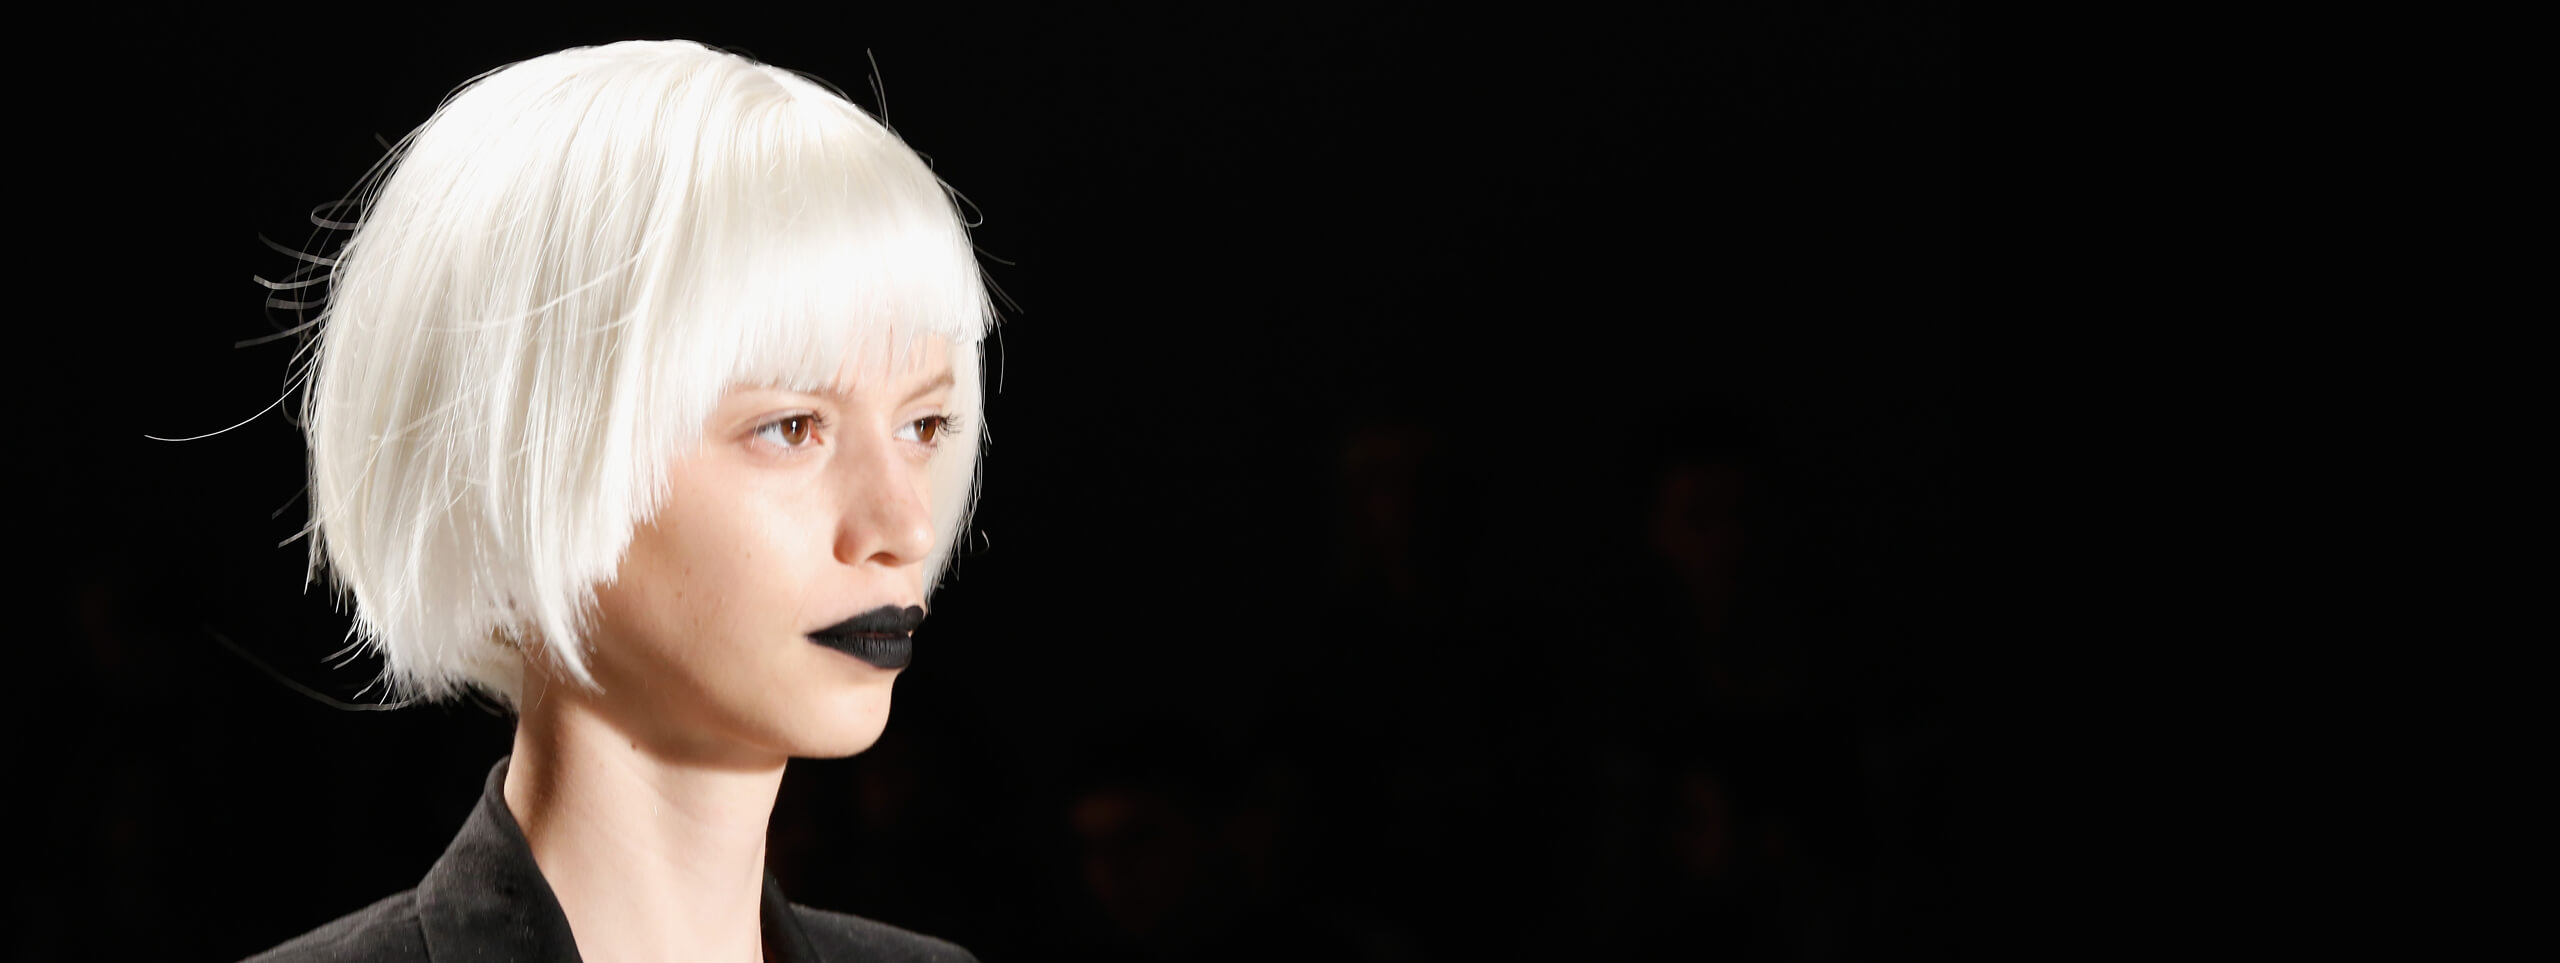 Model with a white bob hairstyle and black lipstick